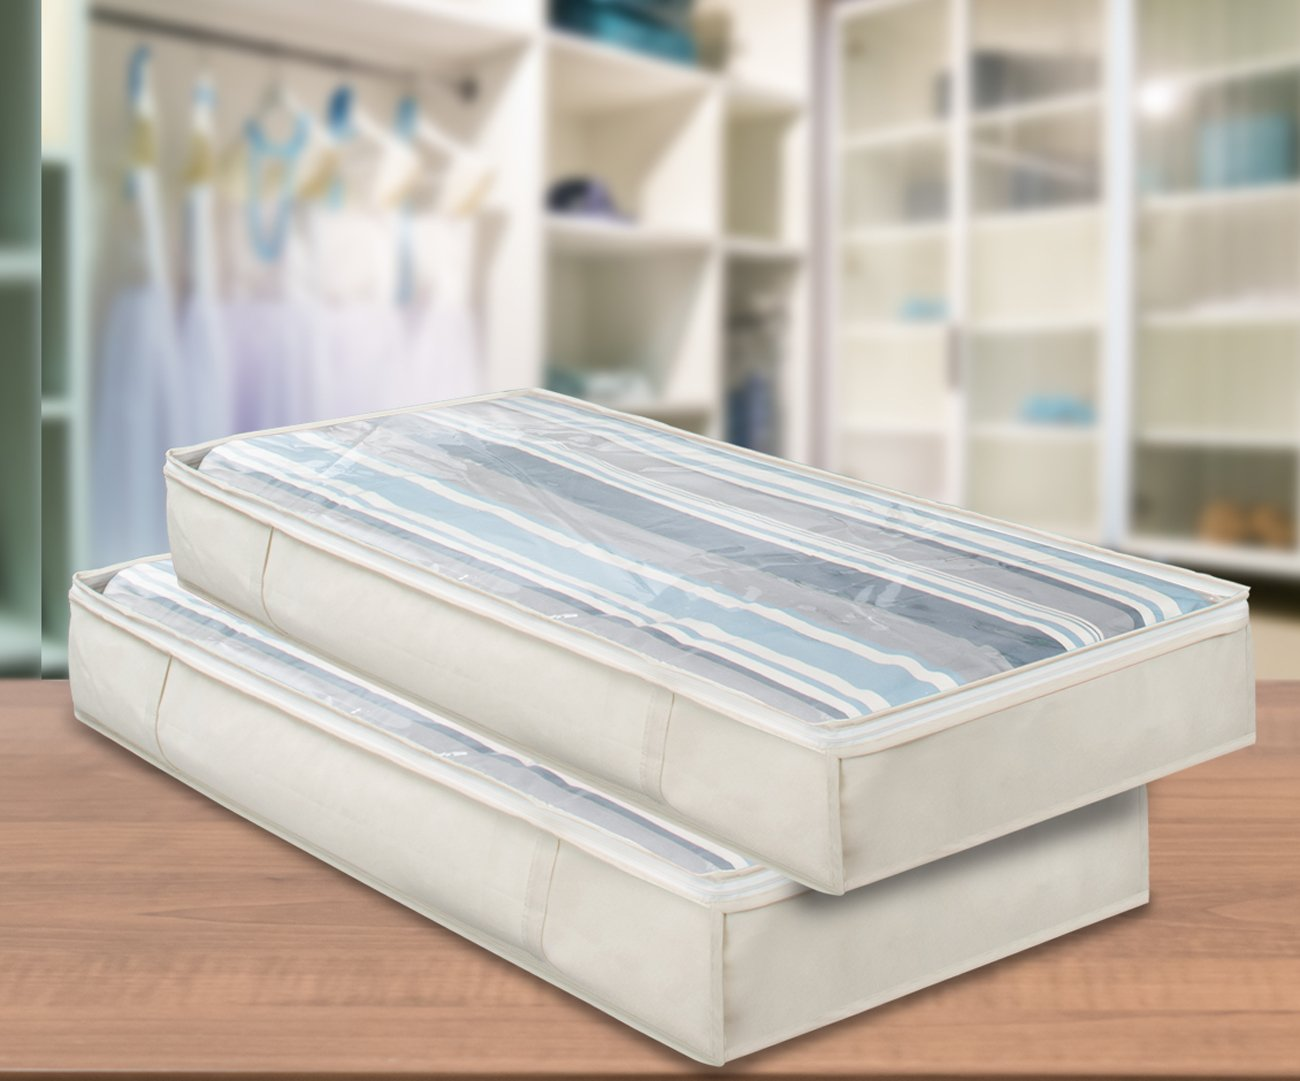 Foldable with Carry Handles Bedrooms Sorbus Underbed Organizer Storage Bag Set Great for Clothes Blankets and more Clear Cover Underbed Storage Bag - 2 Pack, Beige UNBD-BI-2PKA Closets